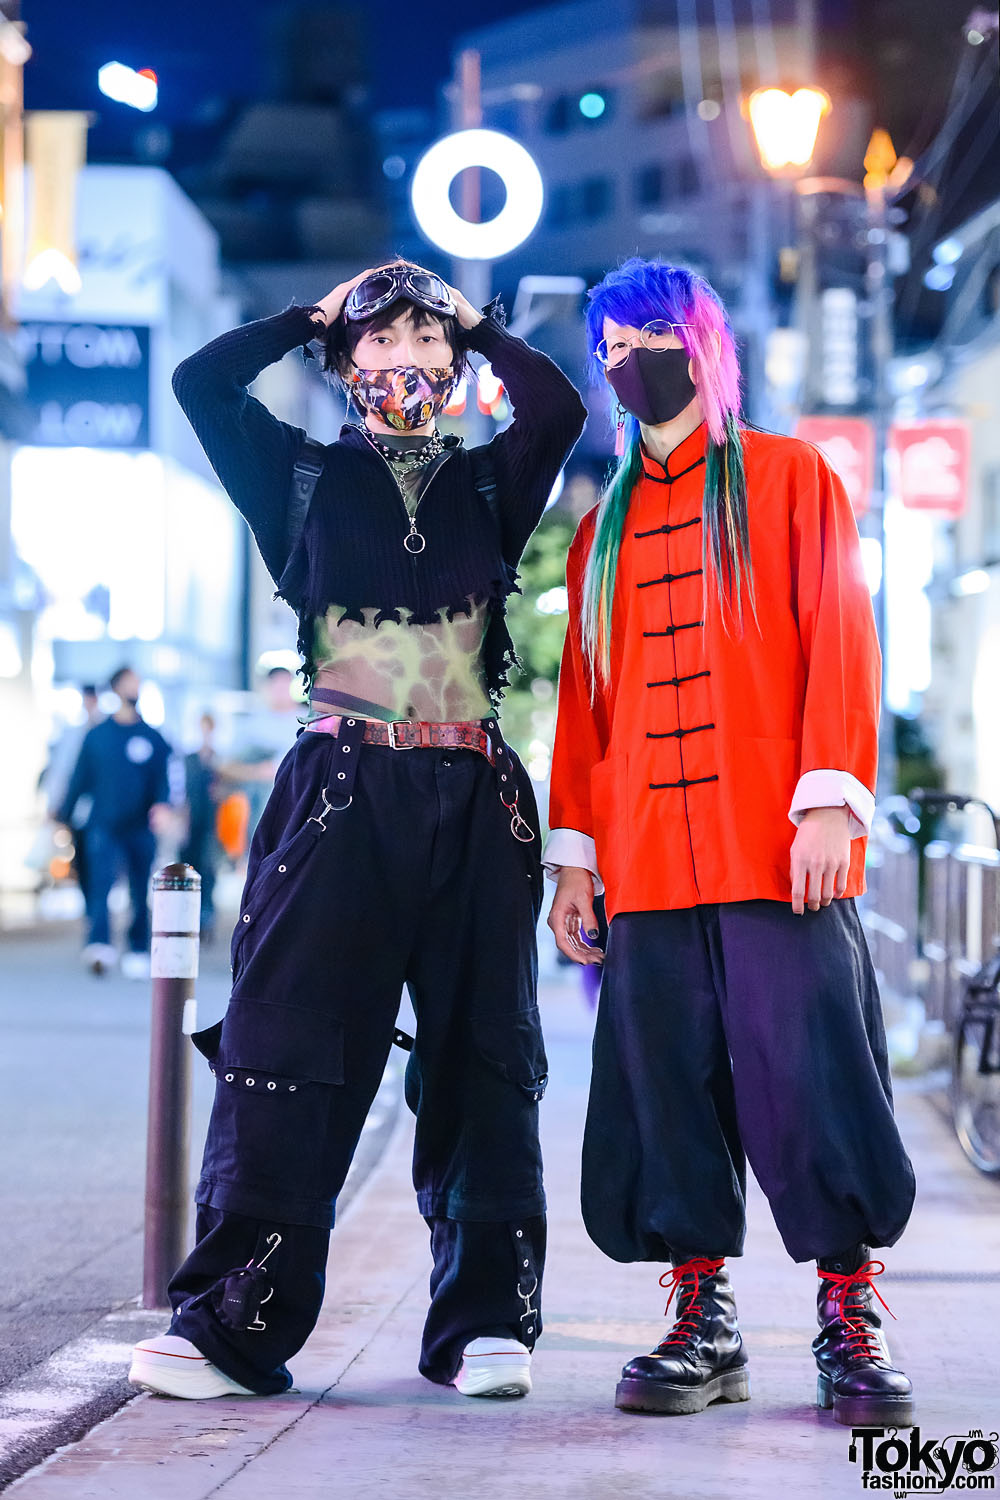 Tokyo Street Styles w/ Multicolored Hair, Goggles, MYOB Tattoo Shirt, Ikumi, Mandarin Collar Shirt, Balloon Pants, Ripndip Plushie Backpack, Dr. Martens & Yosuke